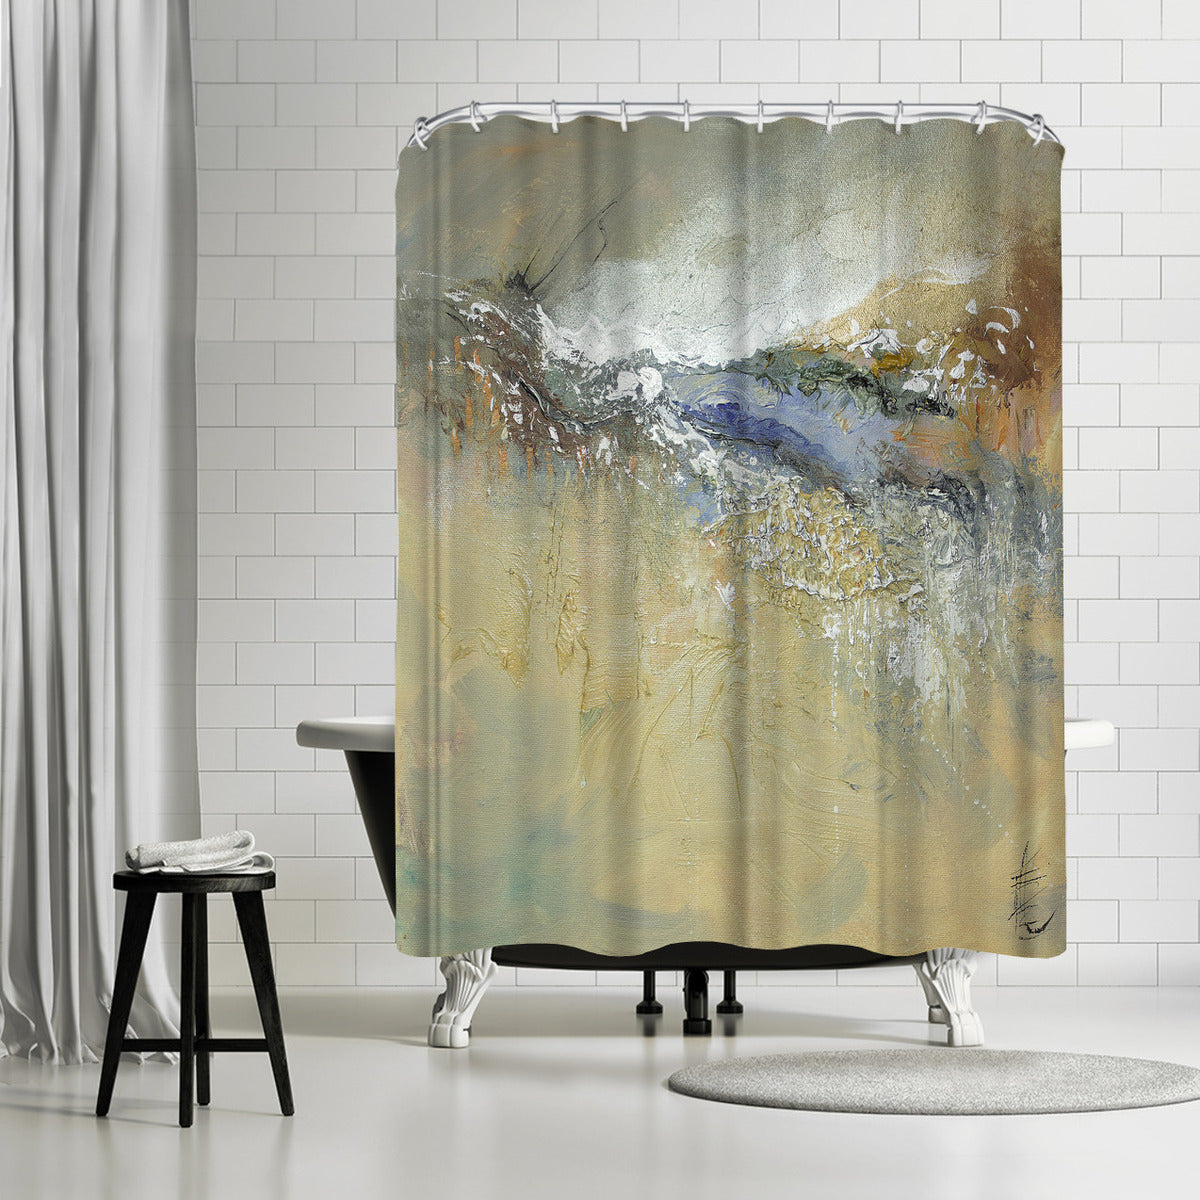 Organic 2 by Anne Farrall Doyle Shower Curtain -  - Americanflat